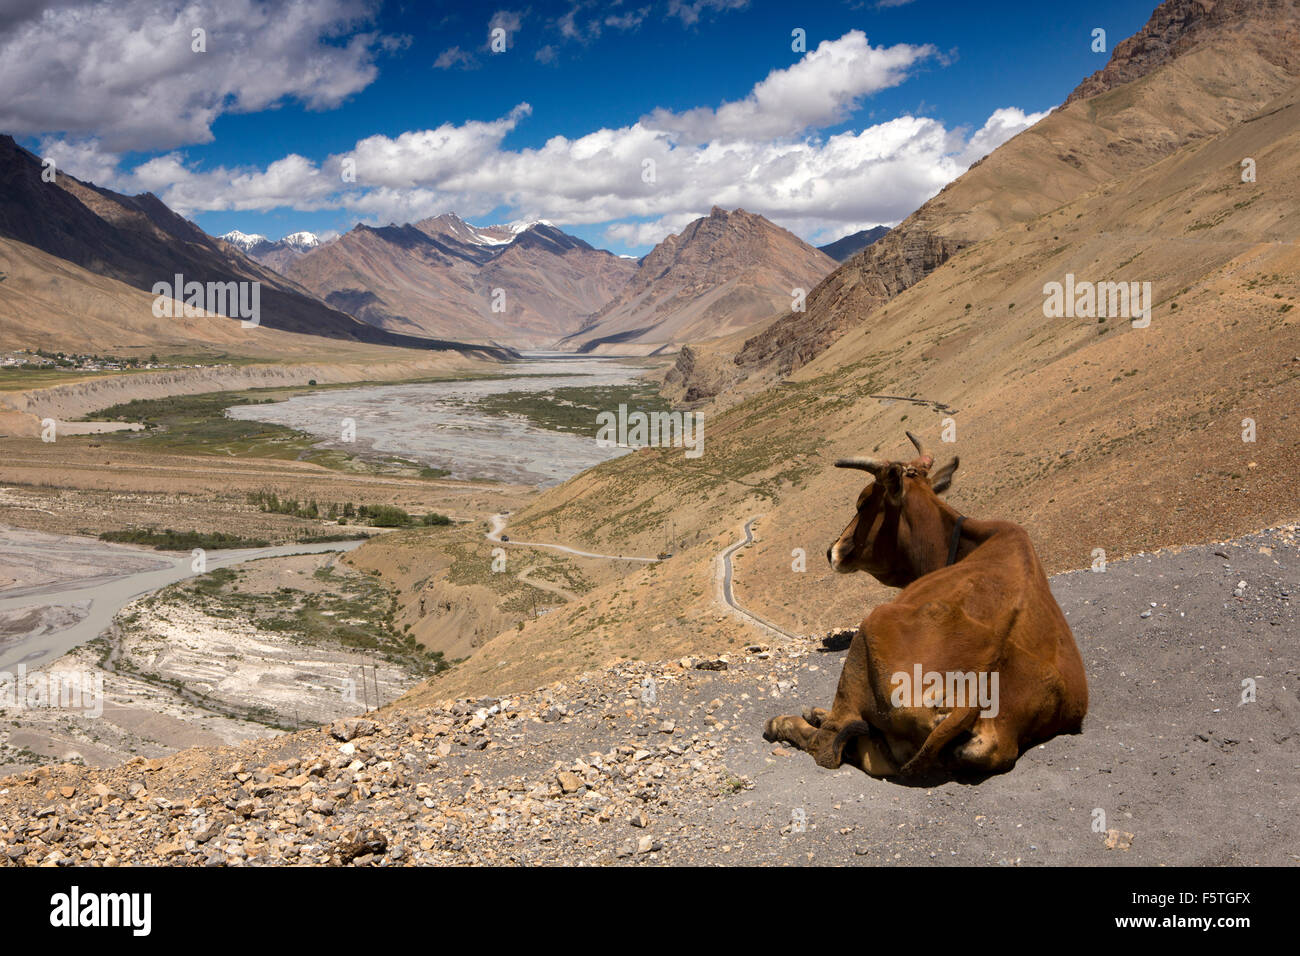 India, Himachal Pradesh, Spiti Valley, cow beside road into mountains north of Kaza - Stock Image